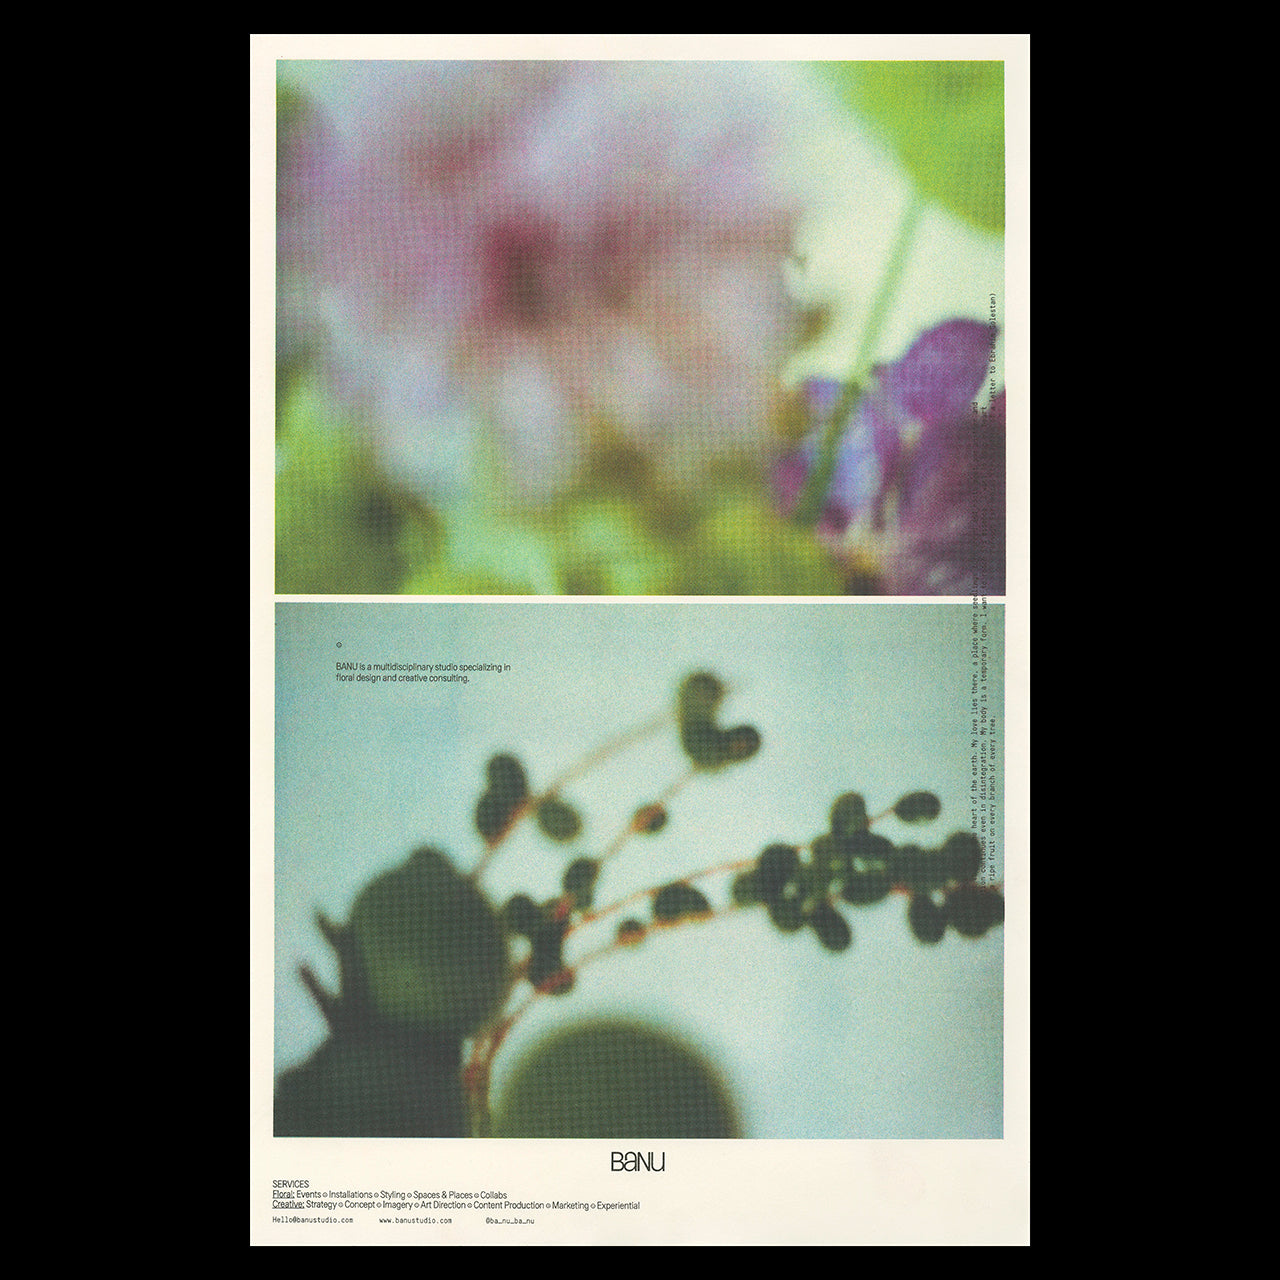 Poster print for Banu Studio featuring blurry artistic photography of flowers